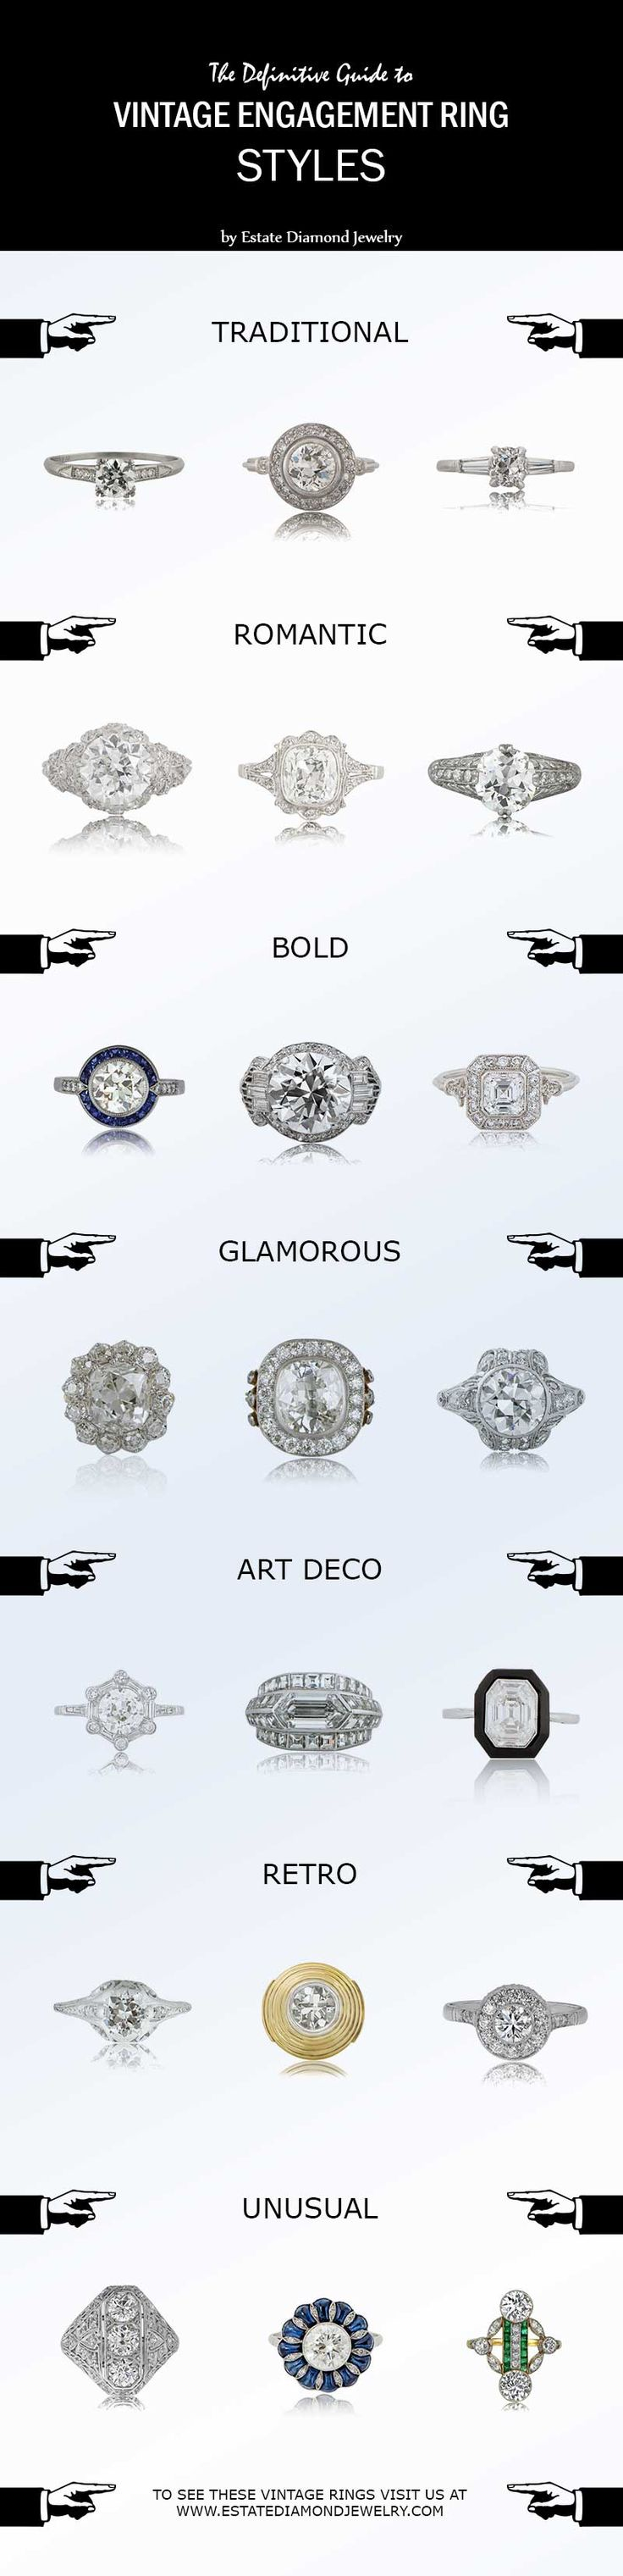 The definitive guide for vintage engagement ring styles. What type of person are you? What's your favorite ring?